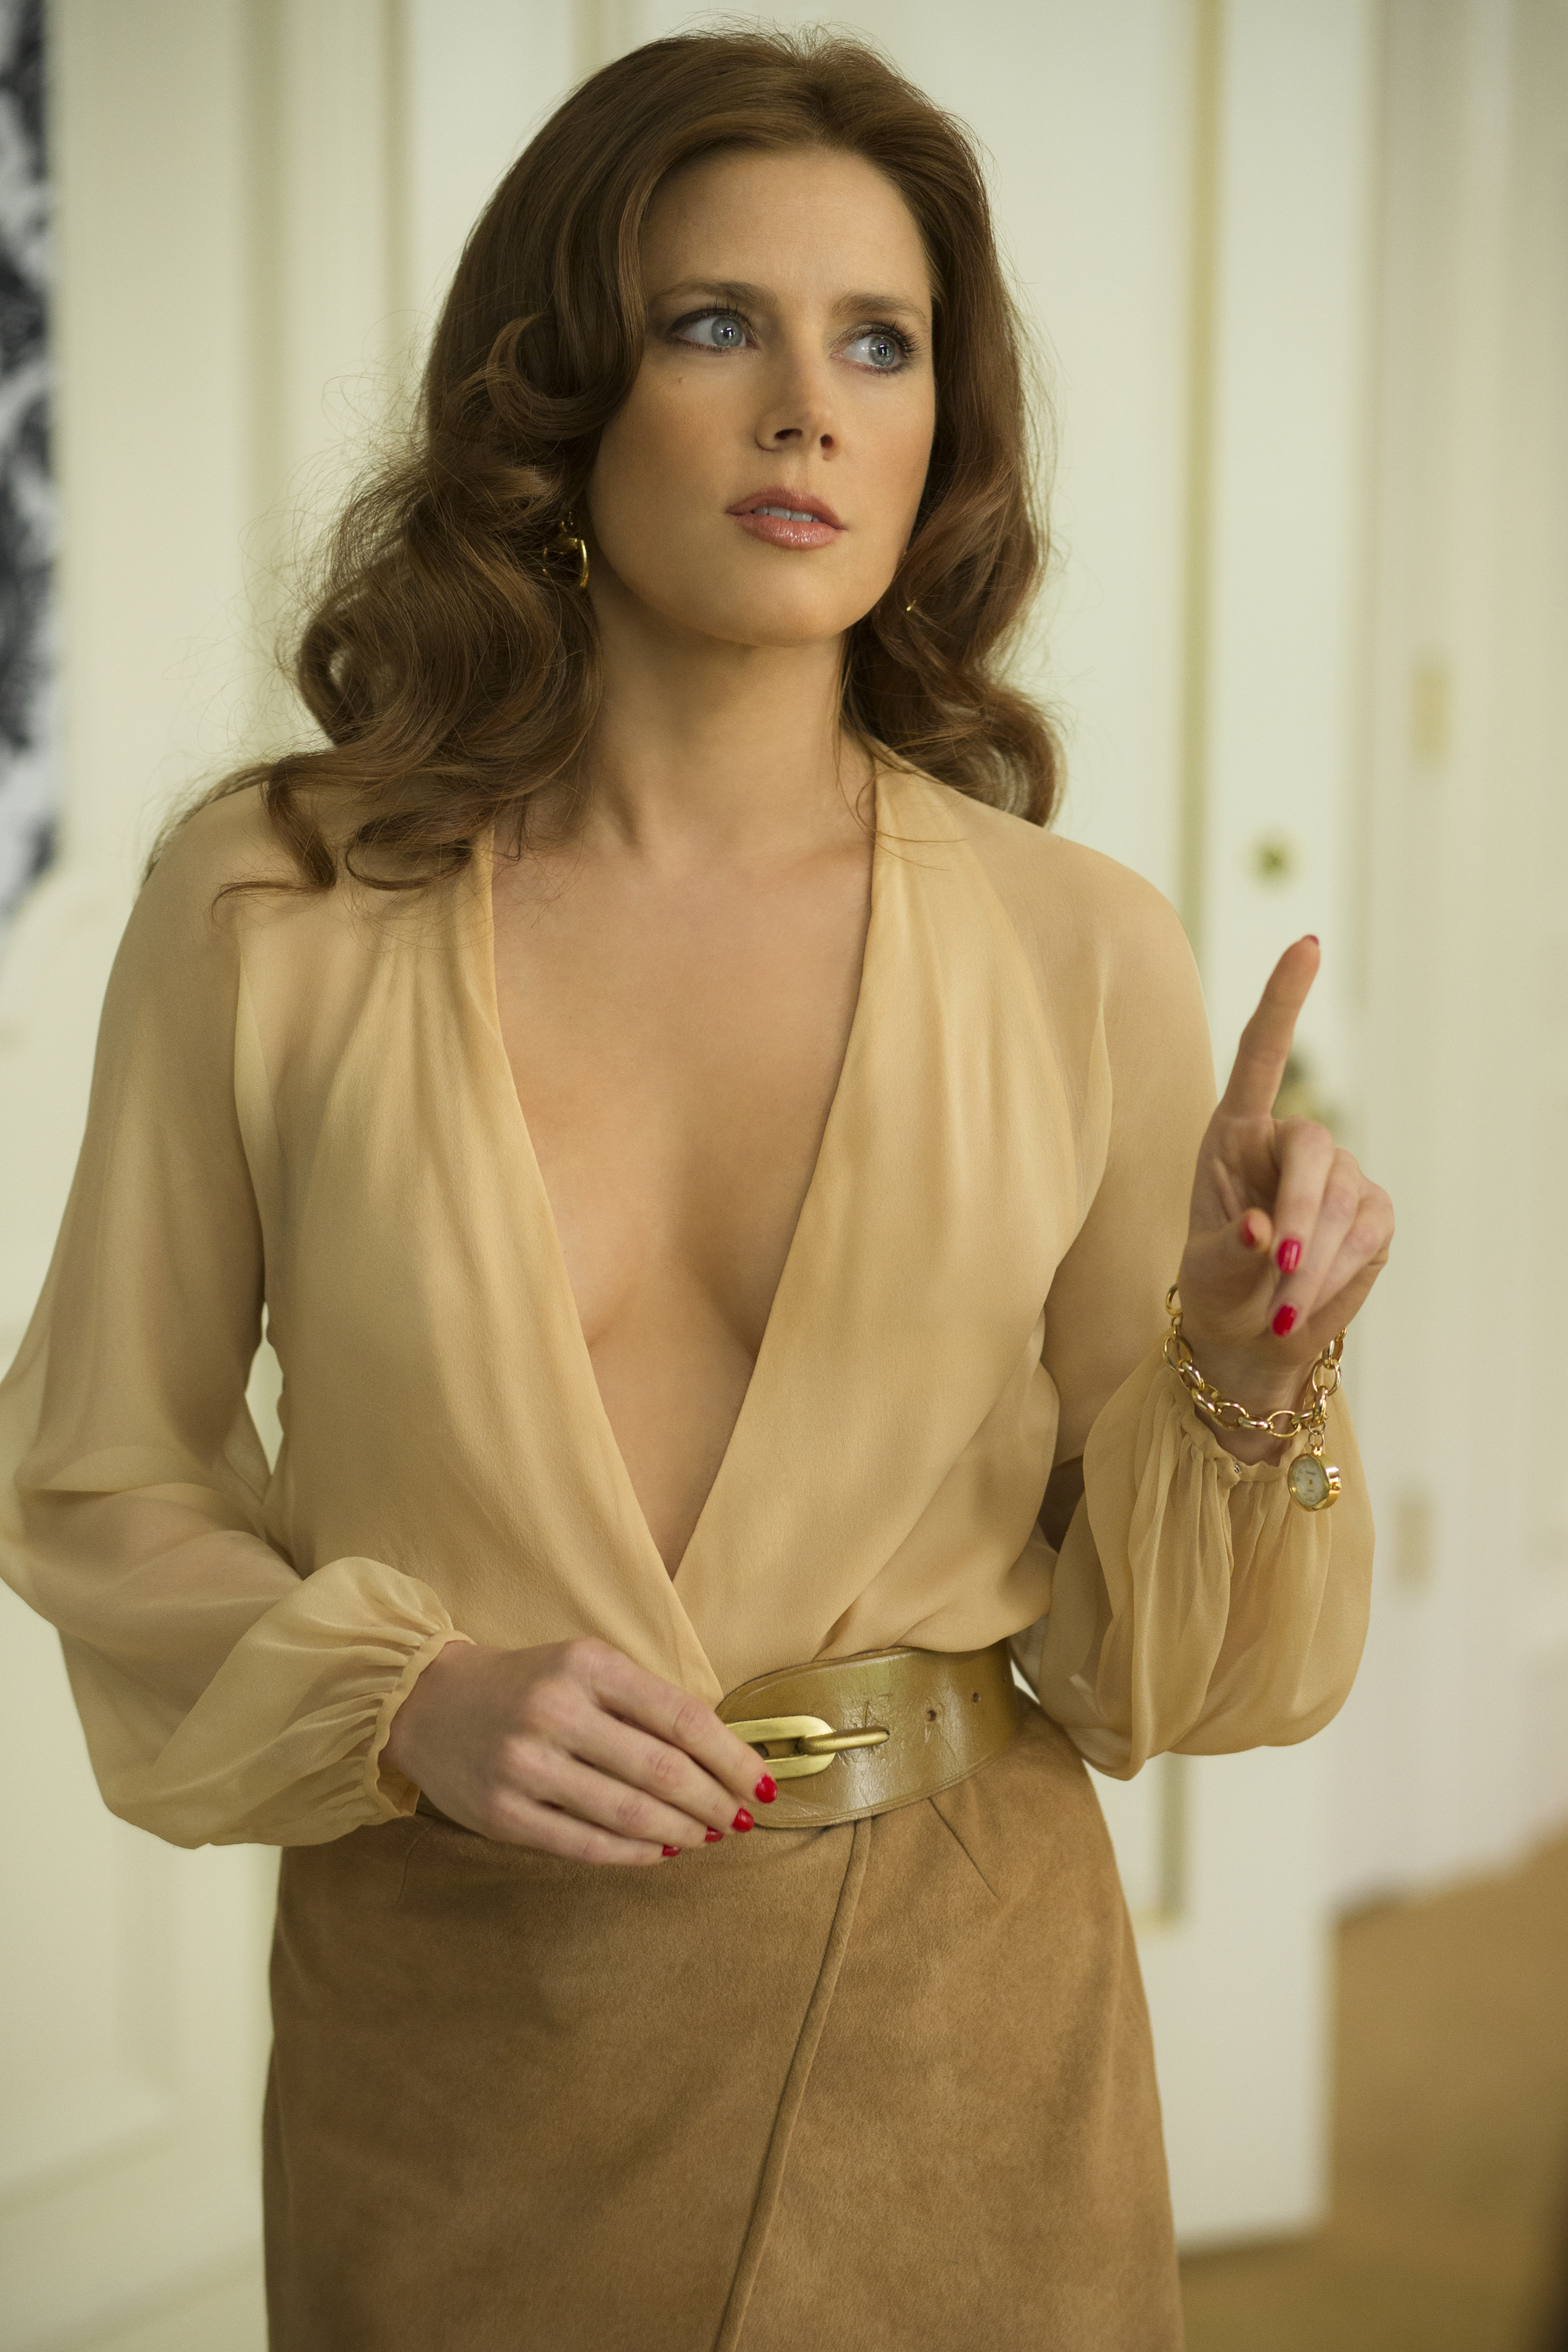 Cleavage Marisa Tomei nude photos 2019